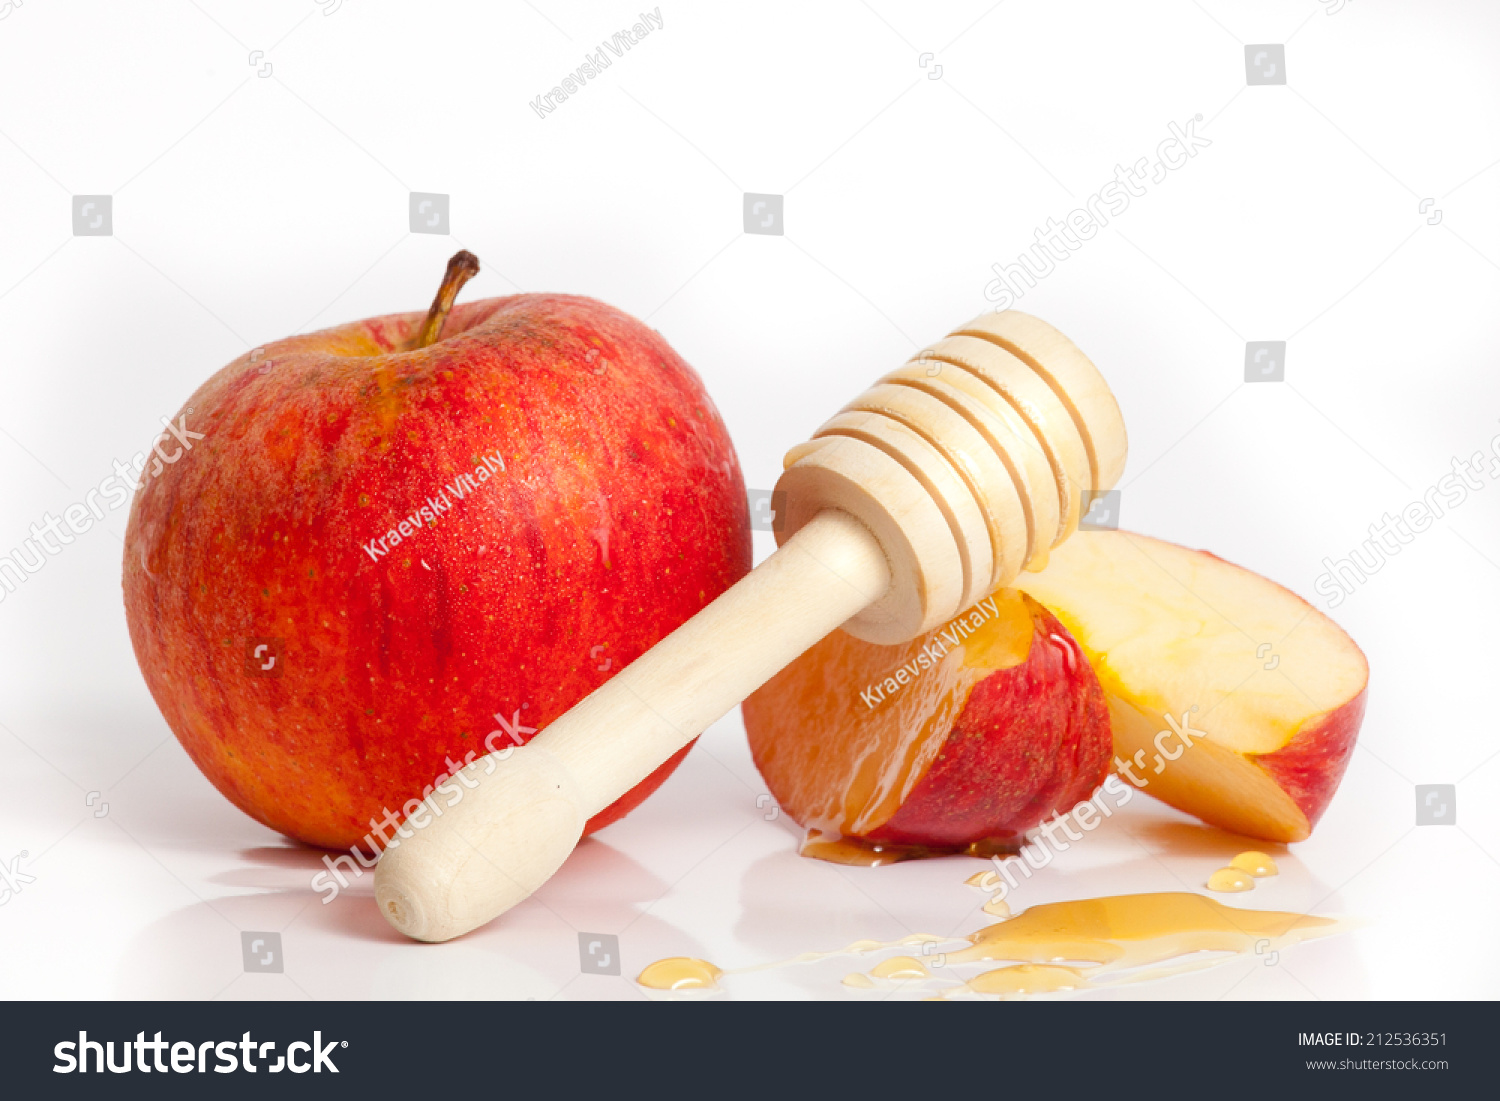 Apple And Honey For Rosh Hashana Jewish New Year Stock ...